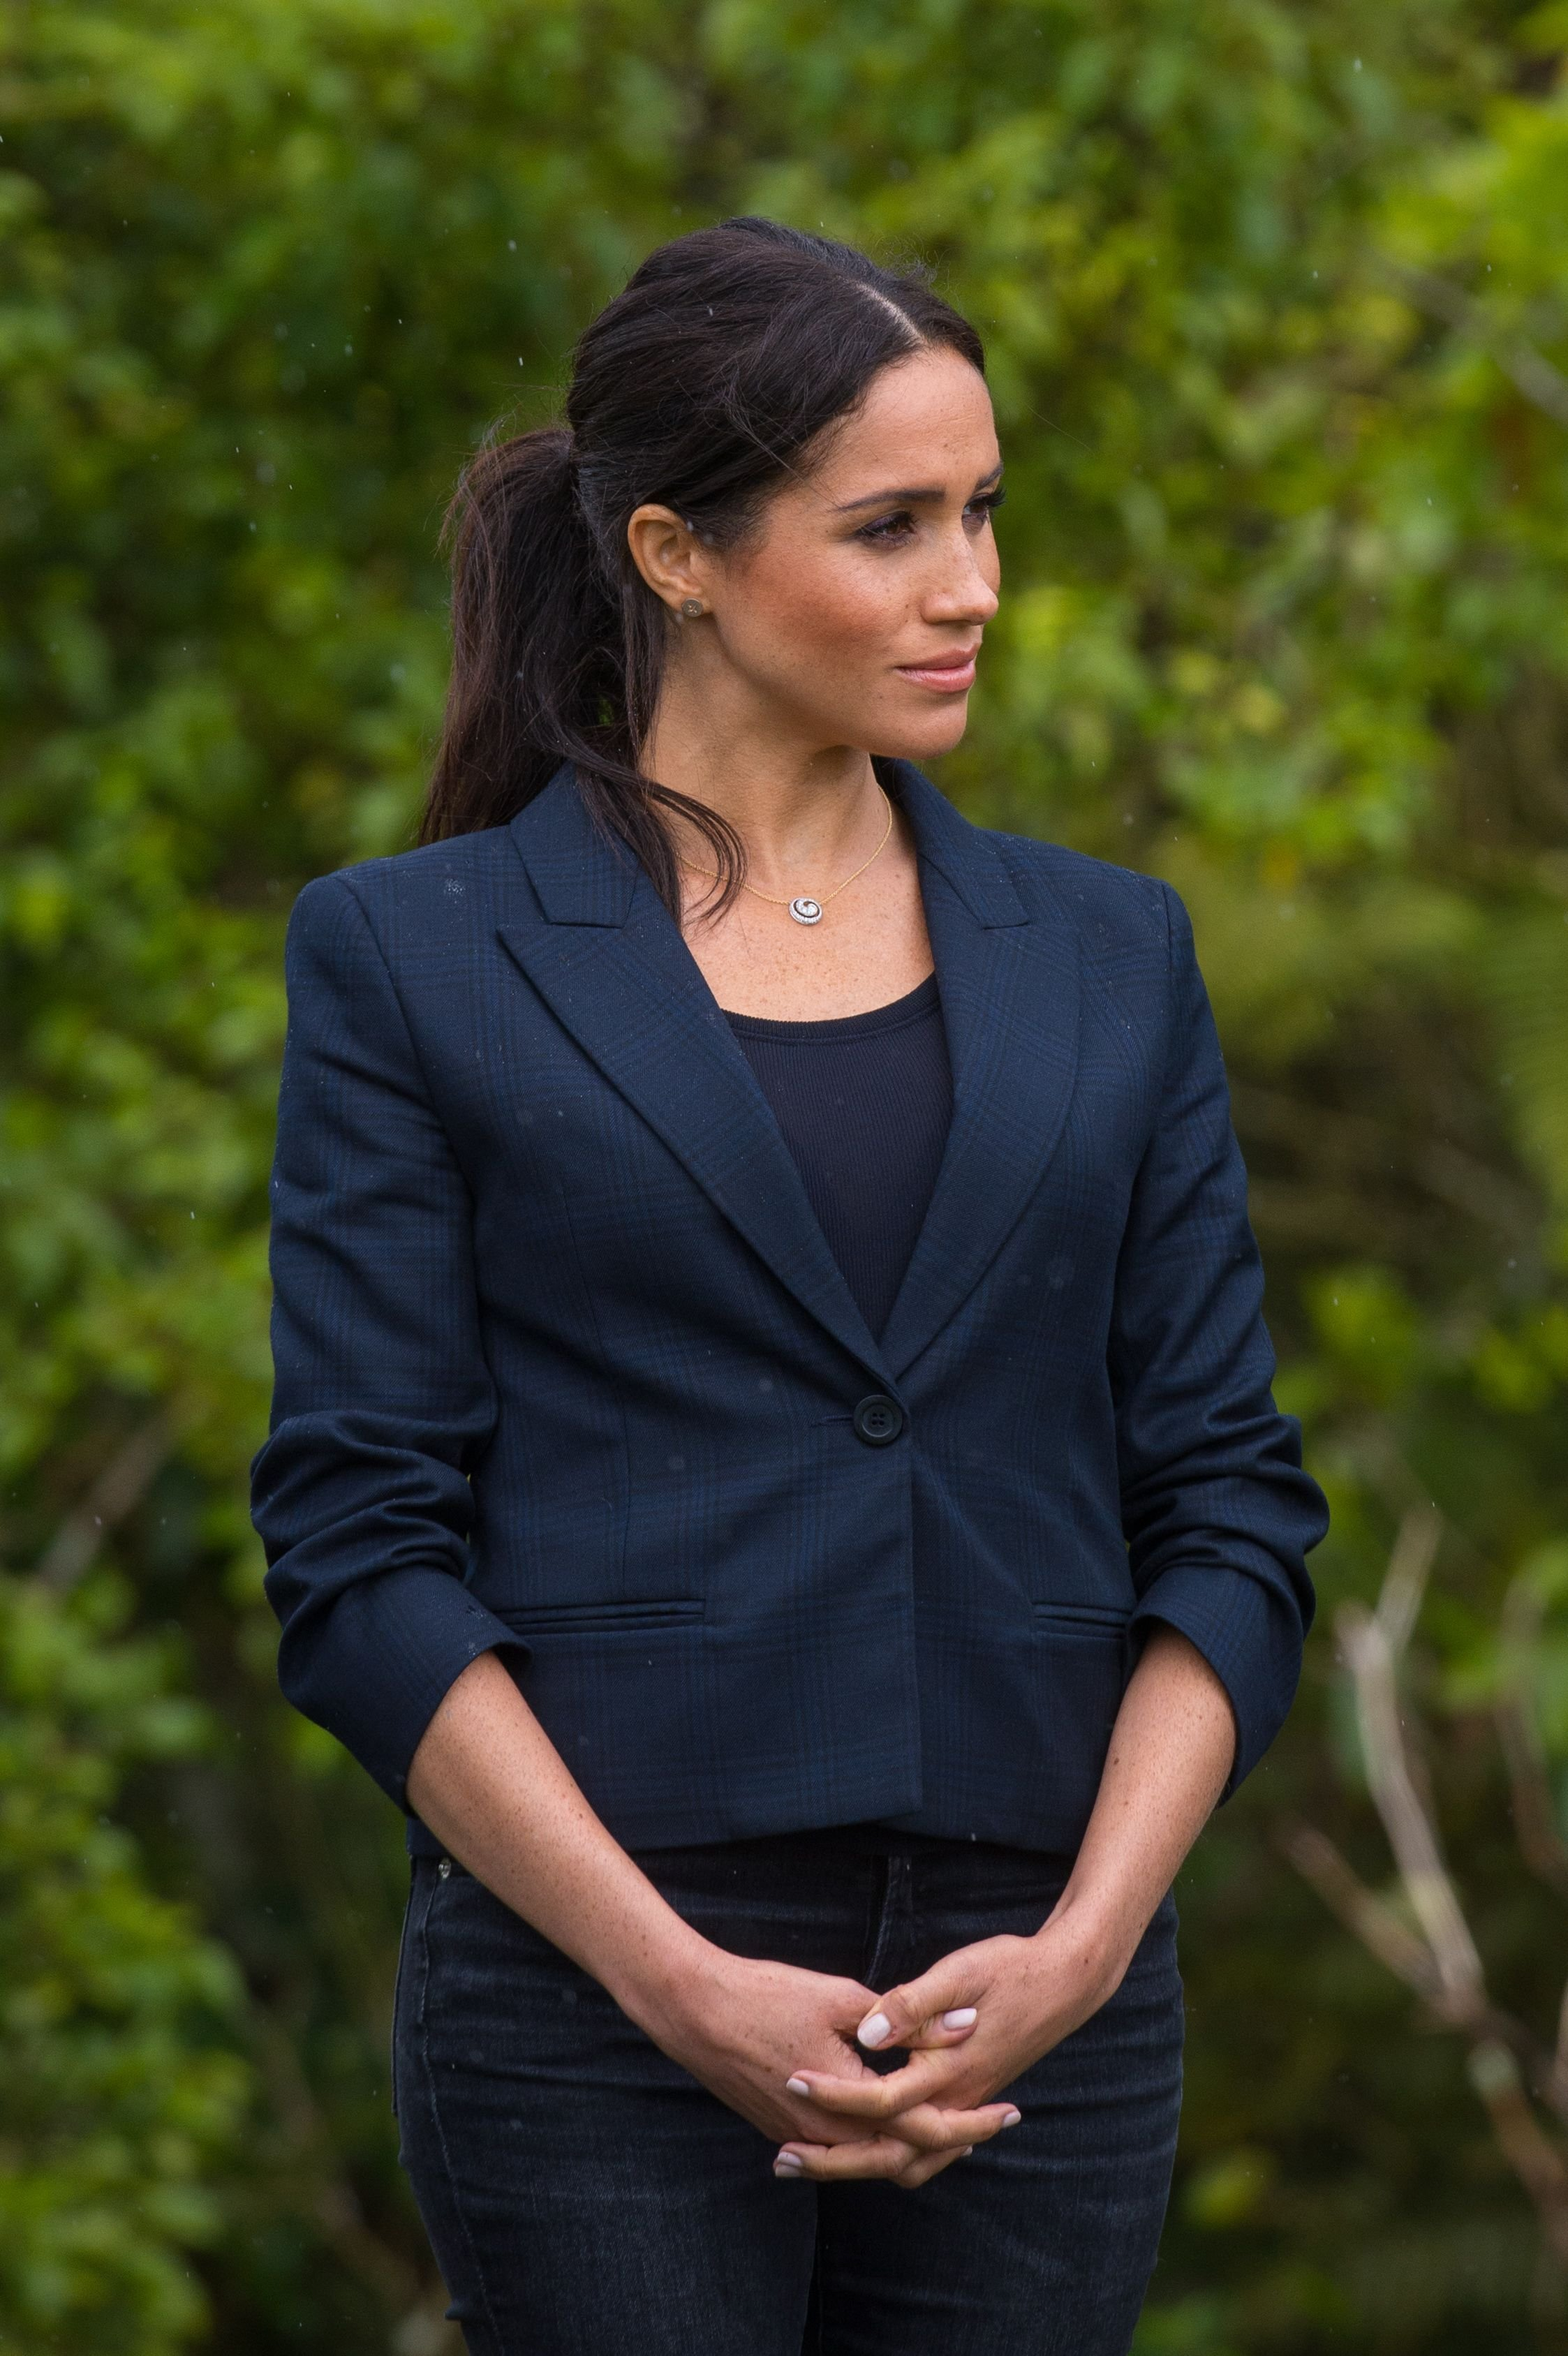 Duchess Meghan at the unveiling of The Queen's Commonwealth Canopy in Redvale on October 30, 2018, in Auckland, New Zealand | Photo: Getty Images